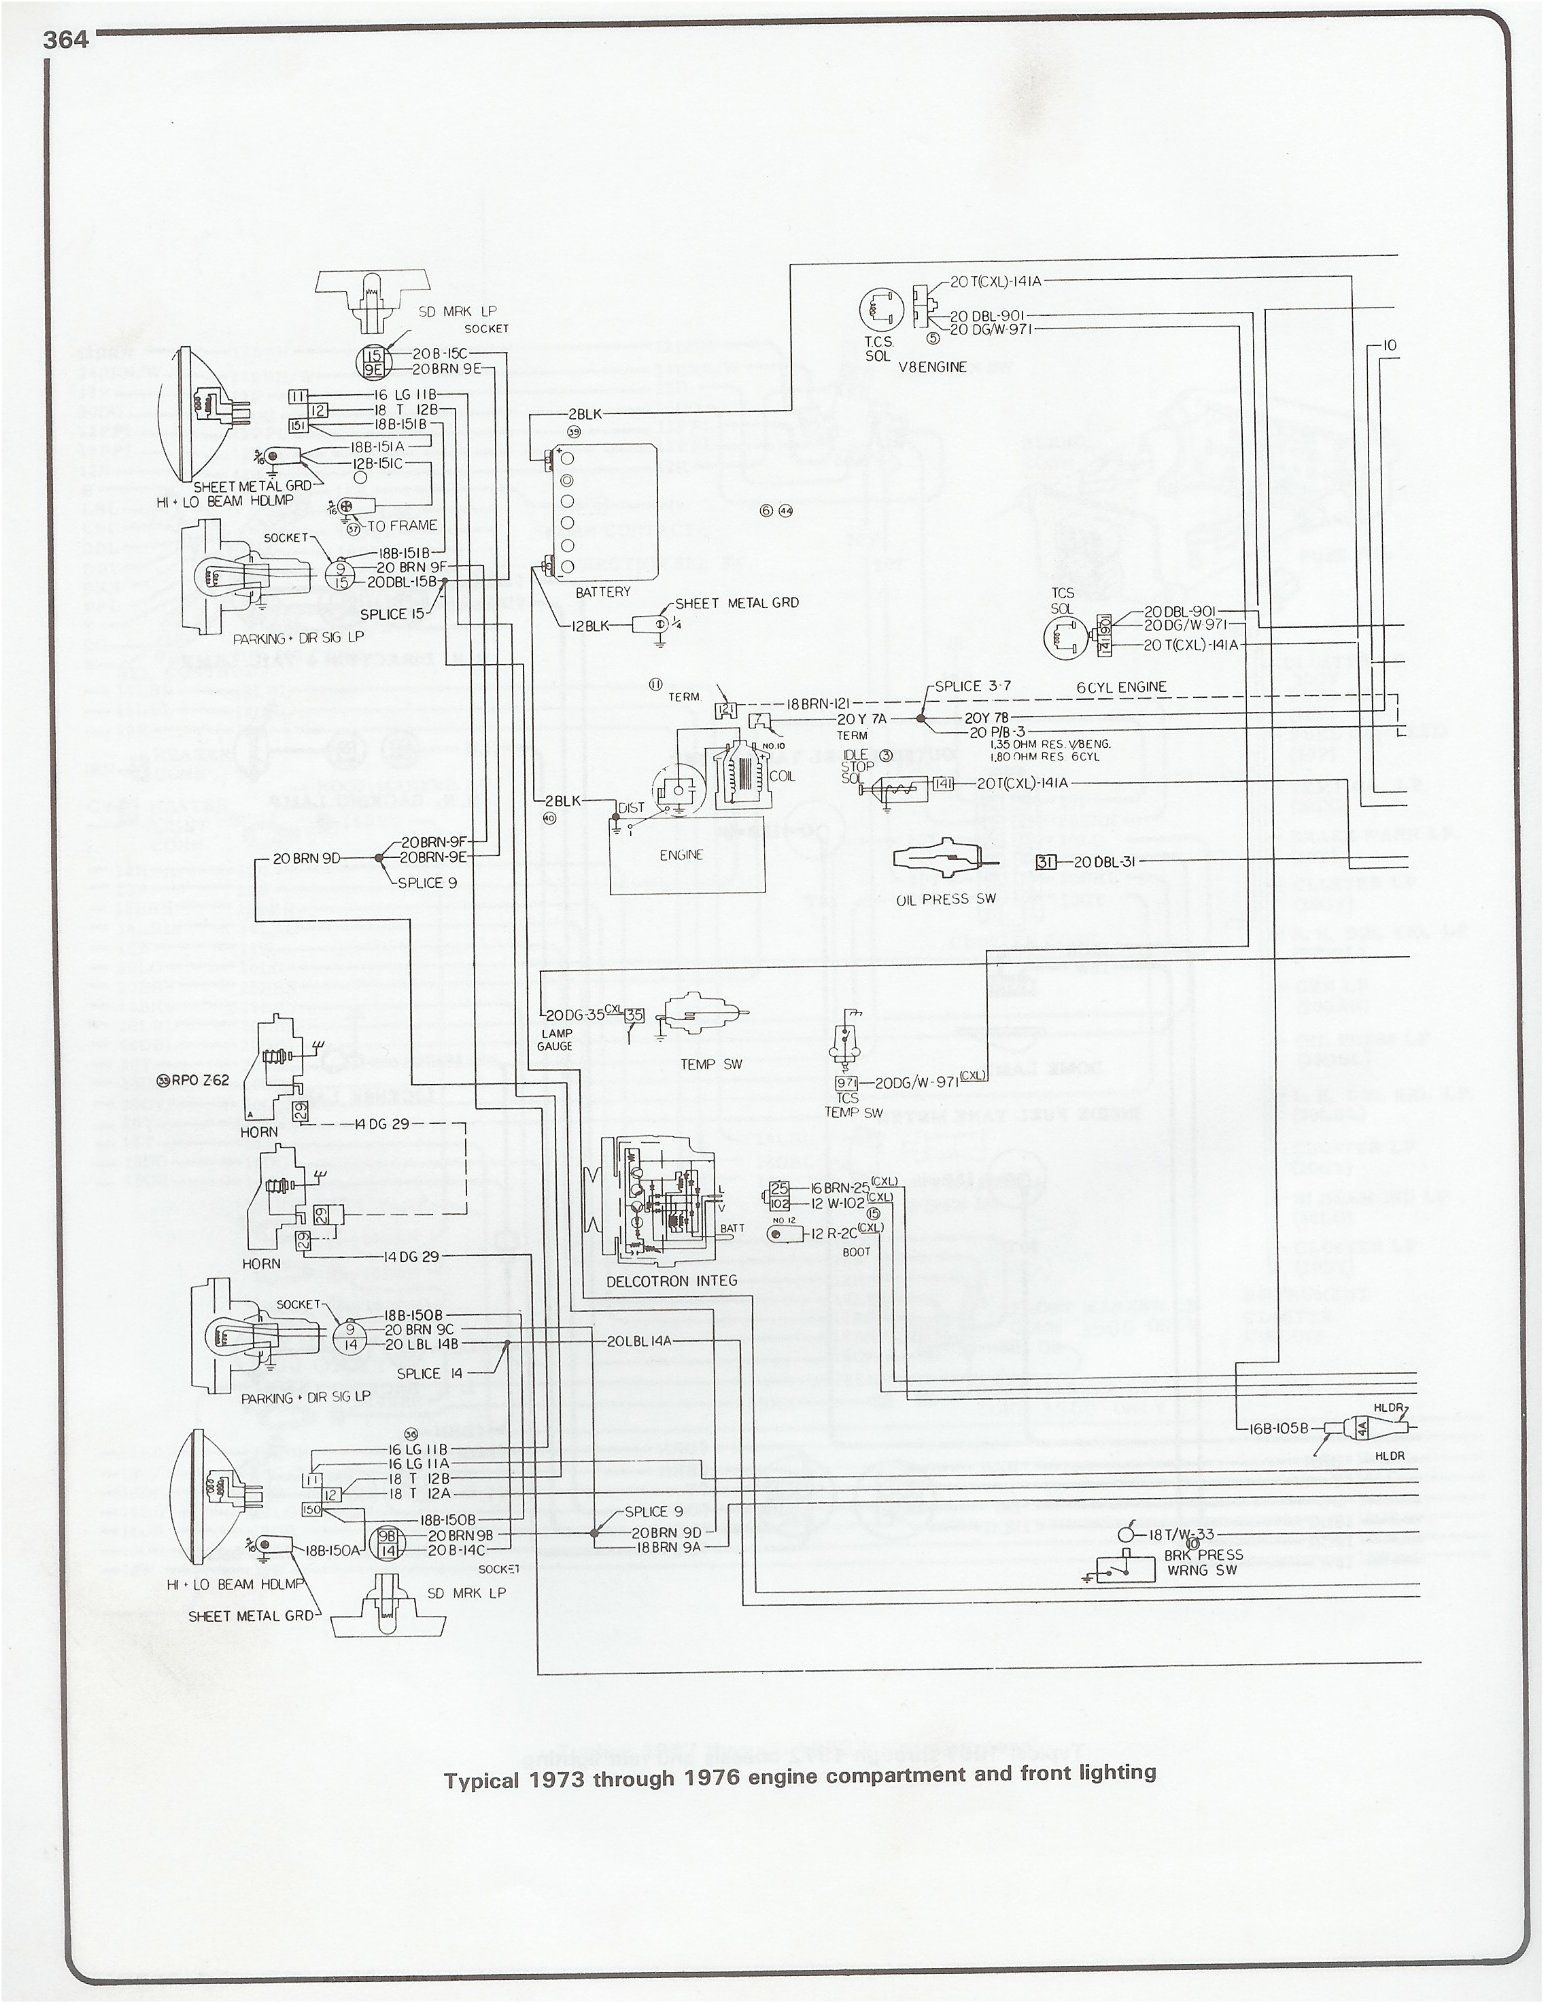 medium resolution of 1977 chevy c10 alternator wiring wiring diagram expert 77 chevy truck alternator wiring 1976 chevy c10